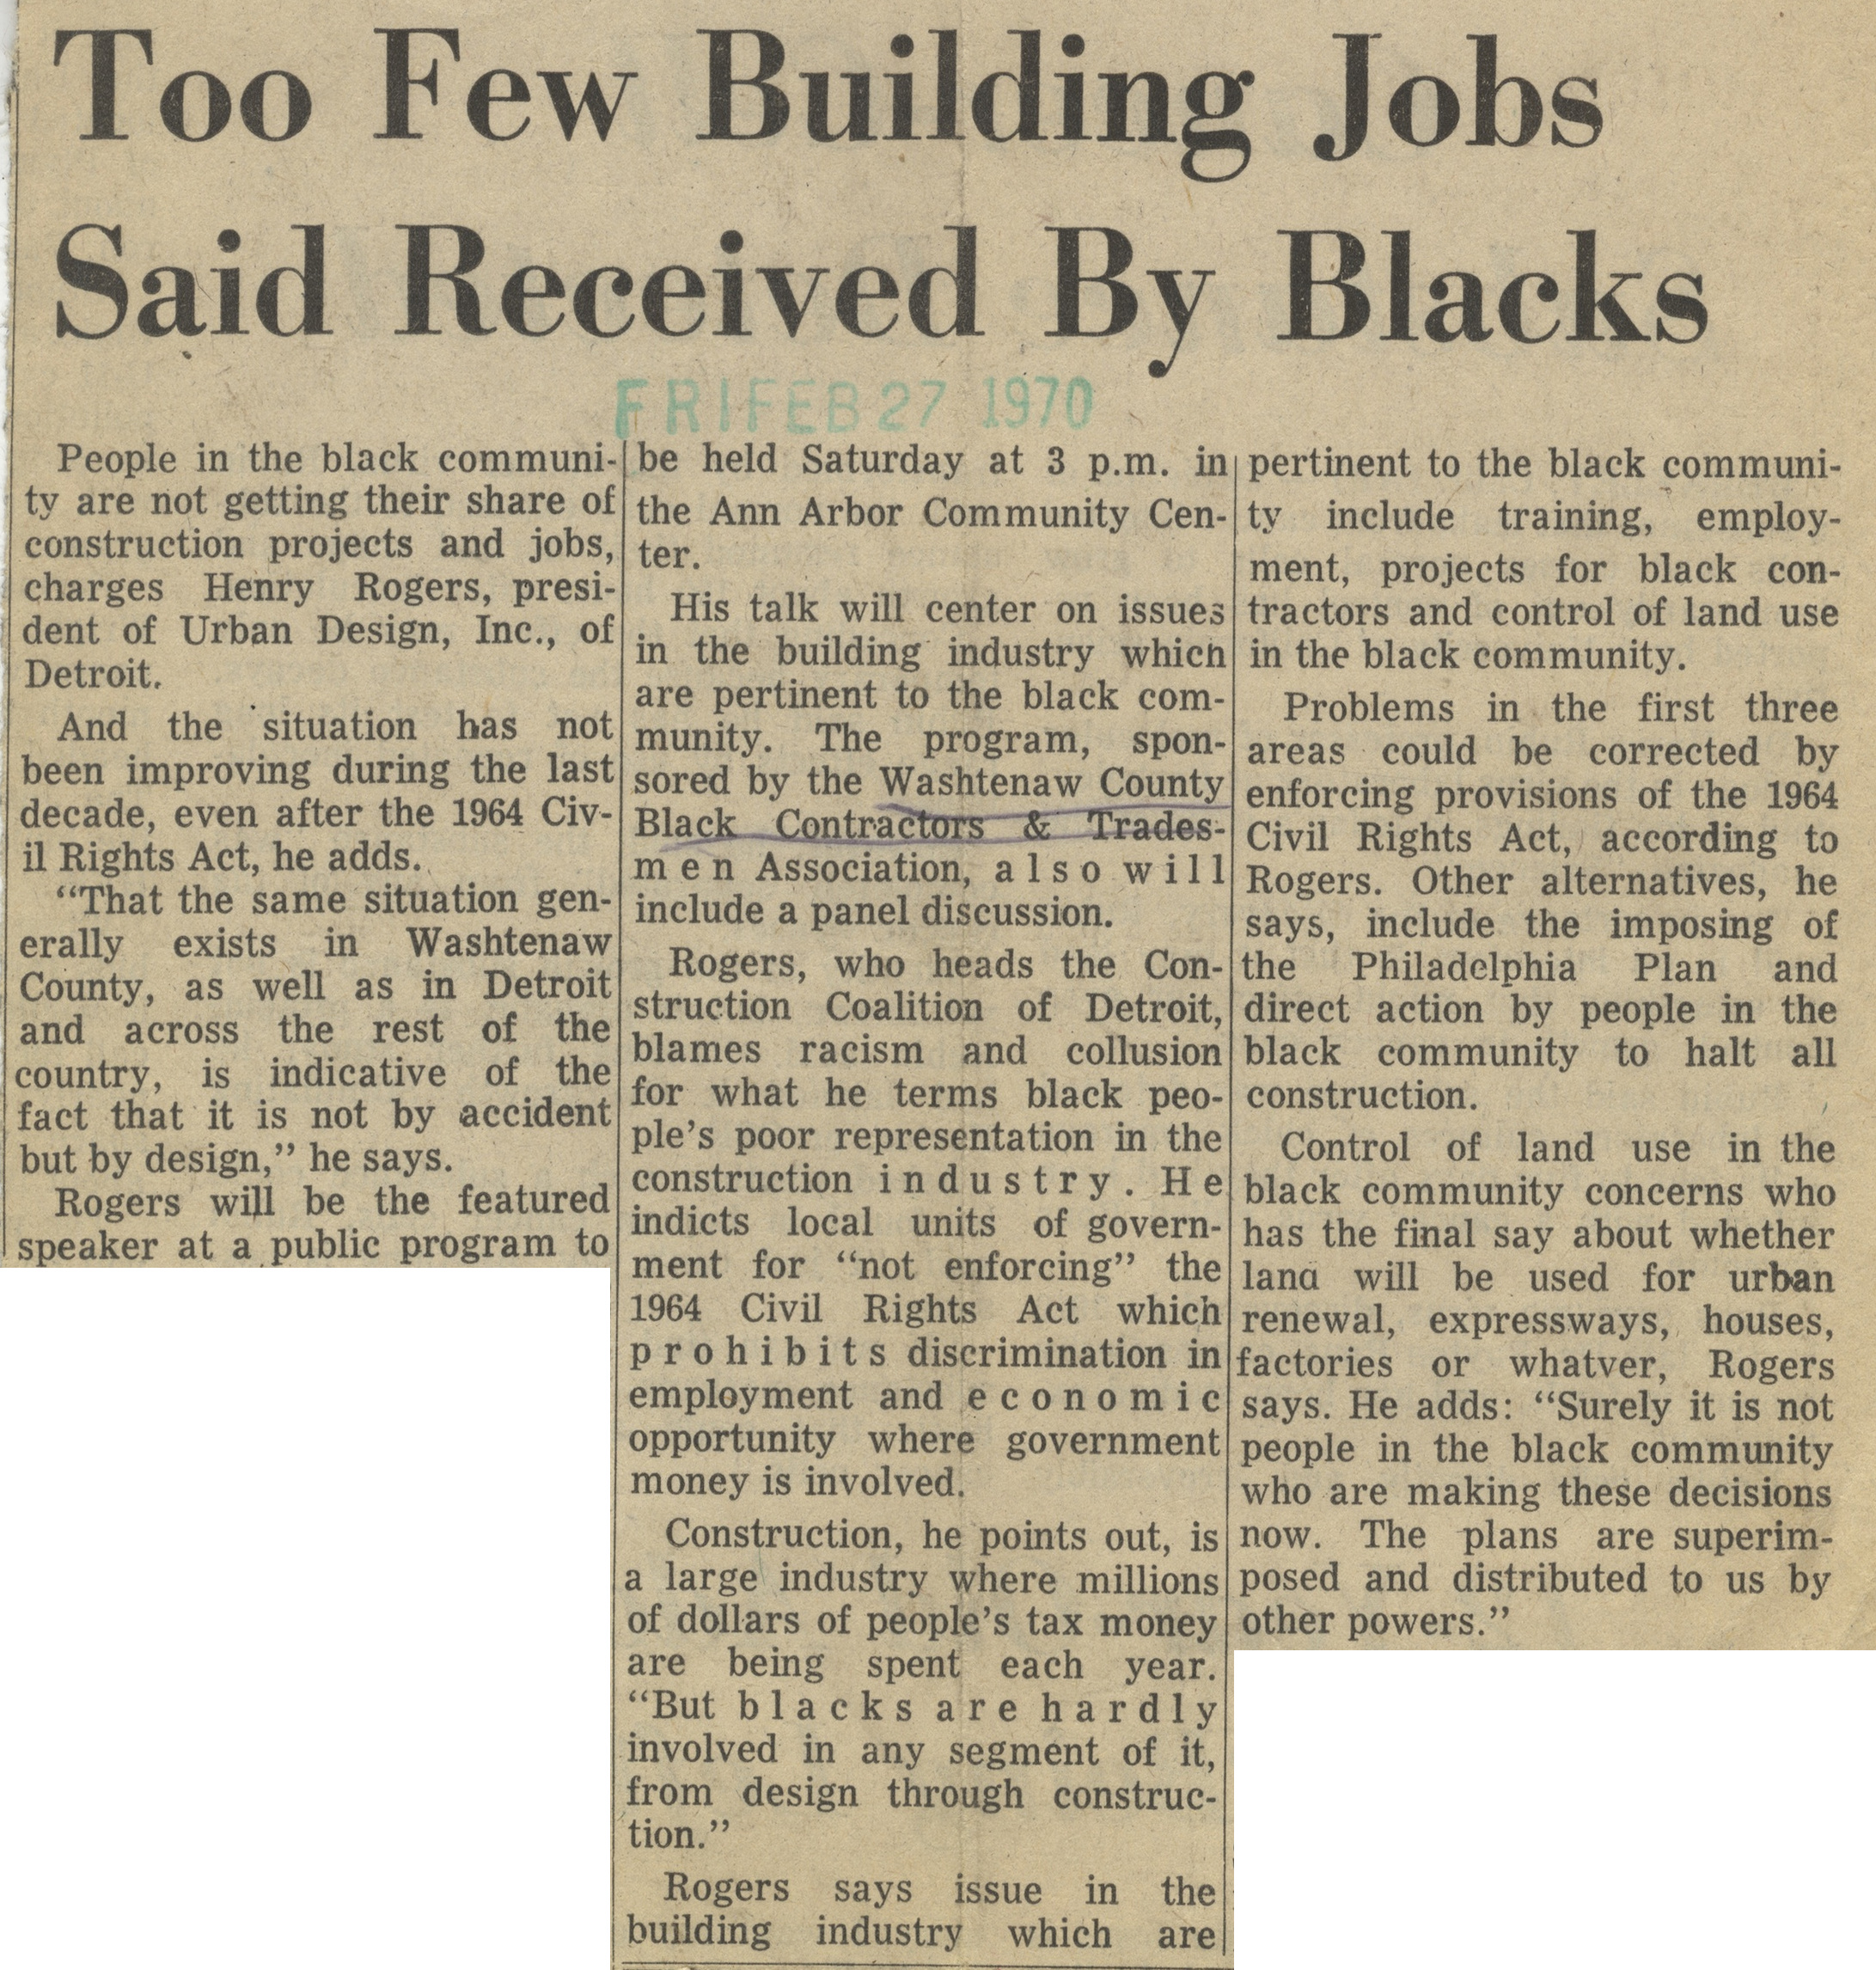 Too Few Building Jobs Said Received By Blacks image